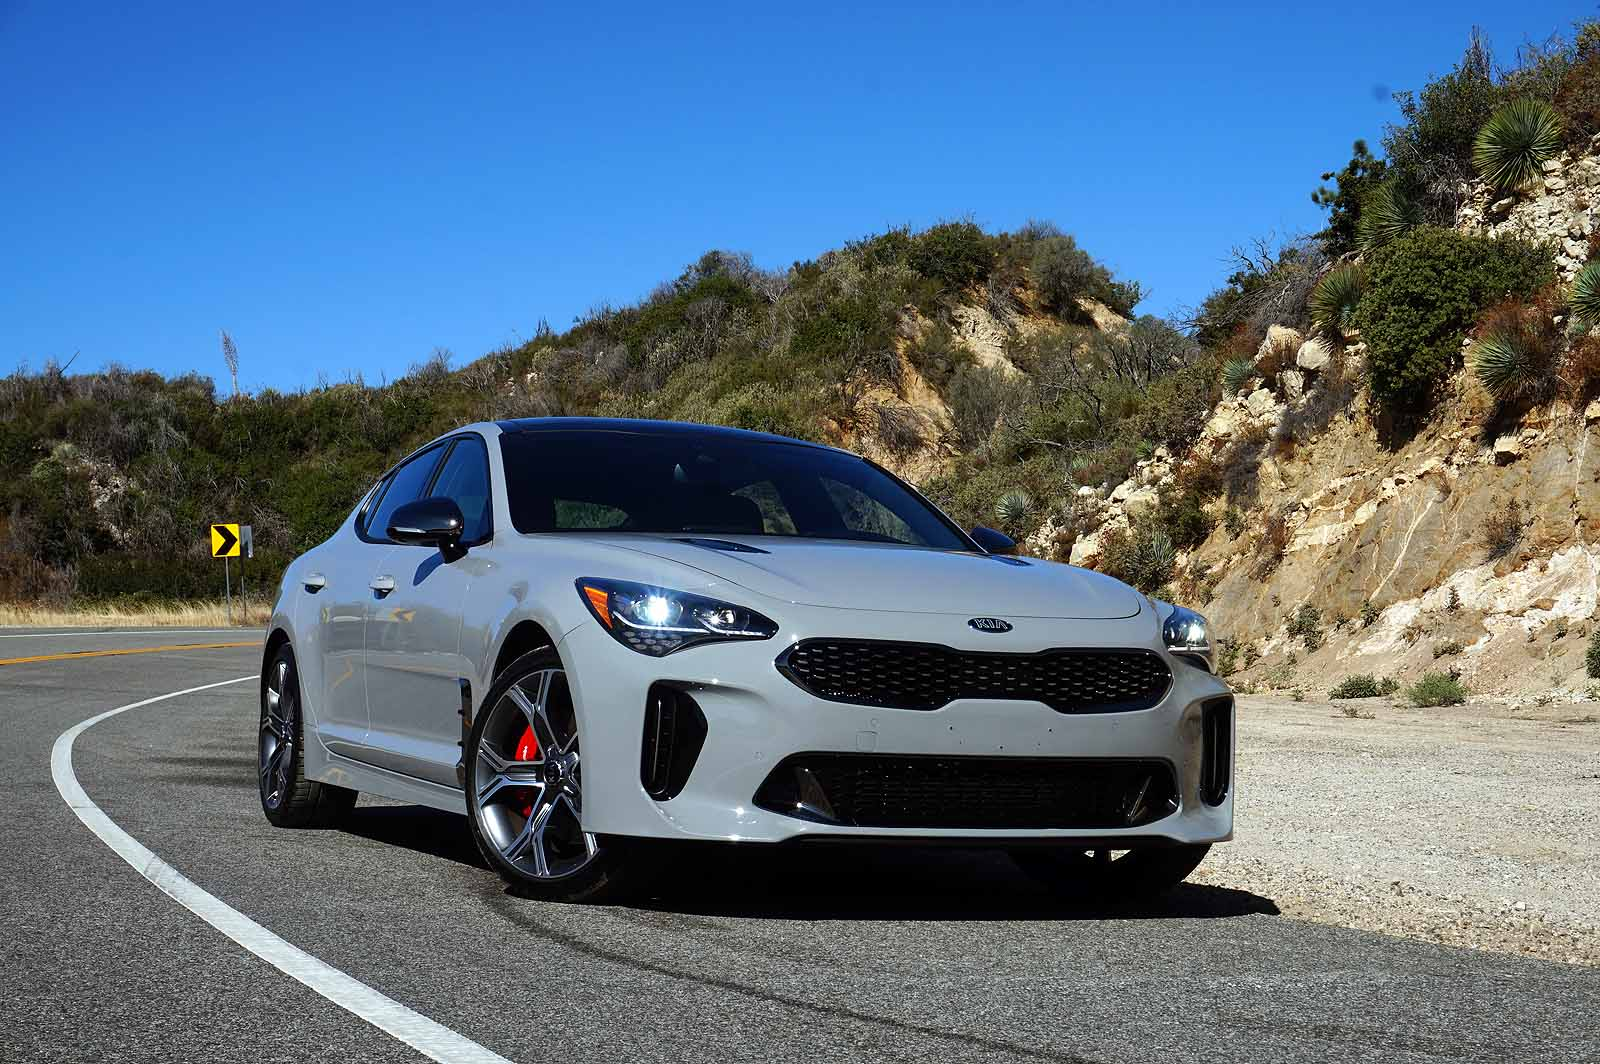 2 Person Car >> 2018 Kia Stinger Review | Kia Stinger GT Review - AutoGuide.com